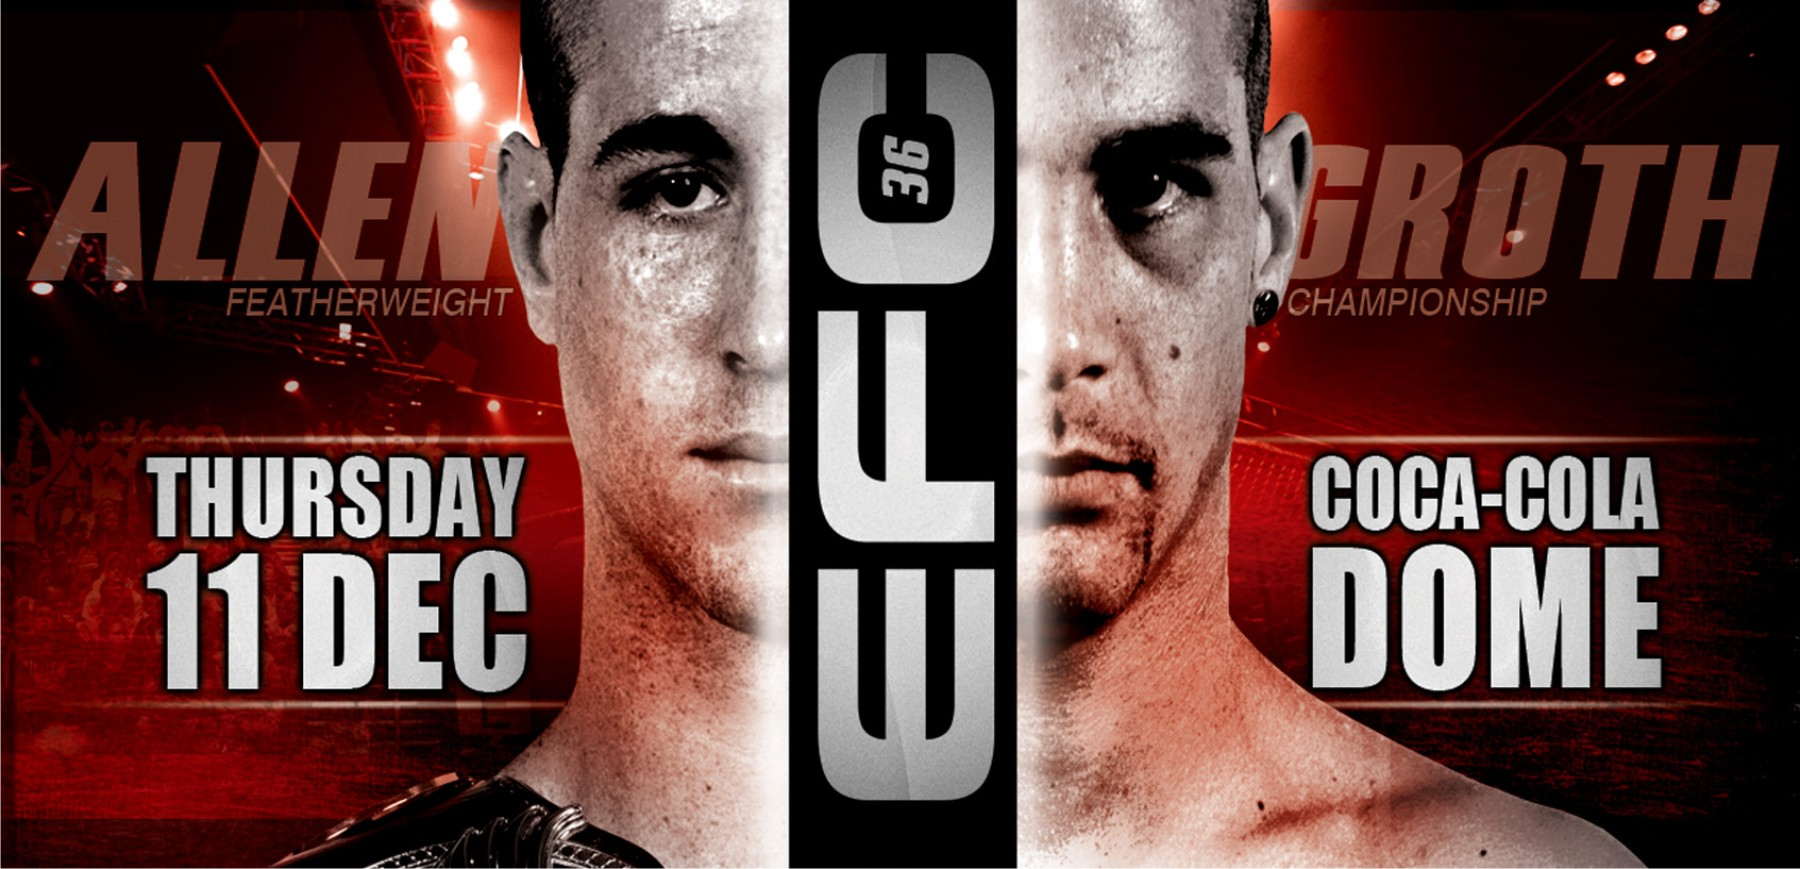 EFC 36 bring the last MMA Fight Card of 2014 to the Coca Cola Dome